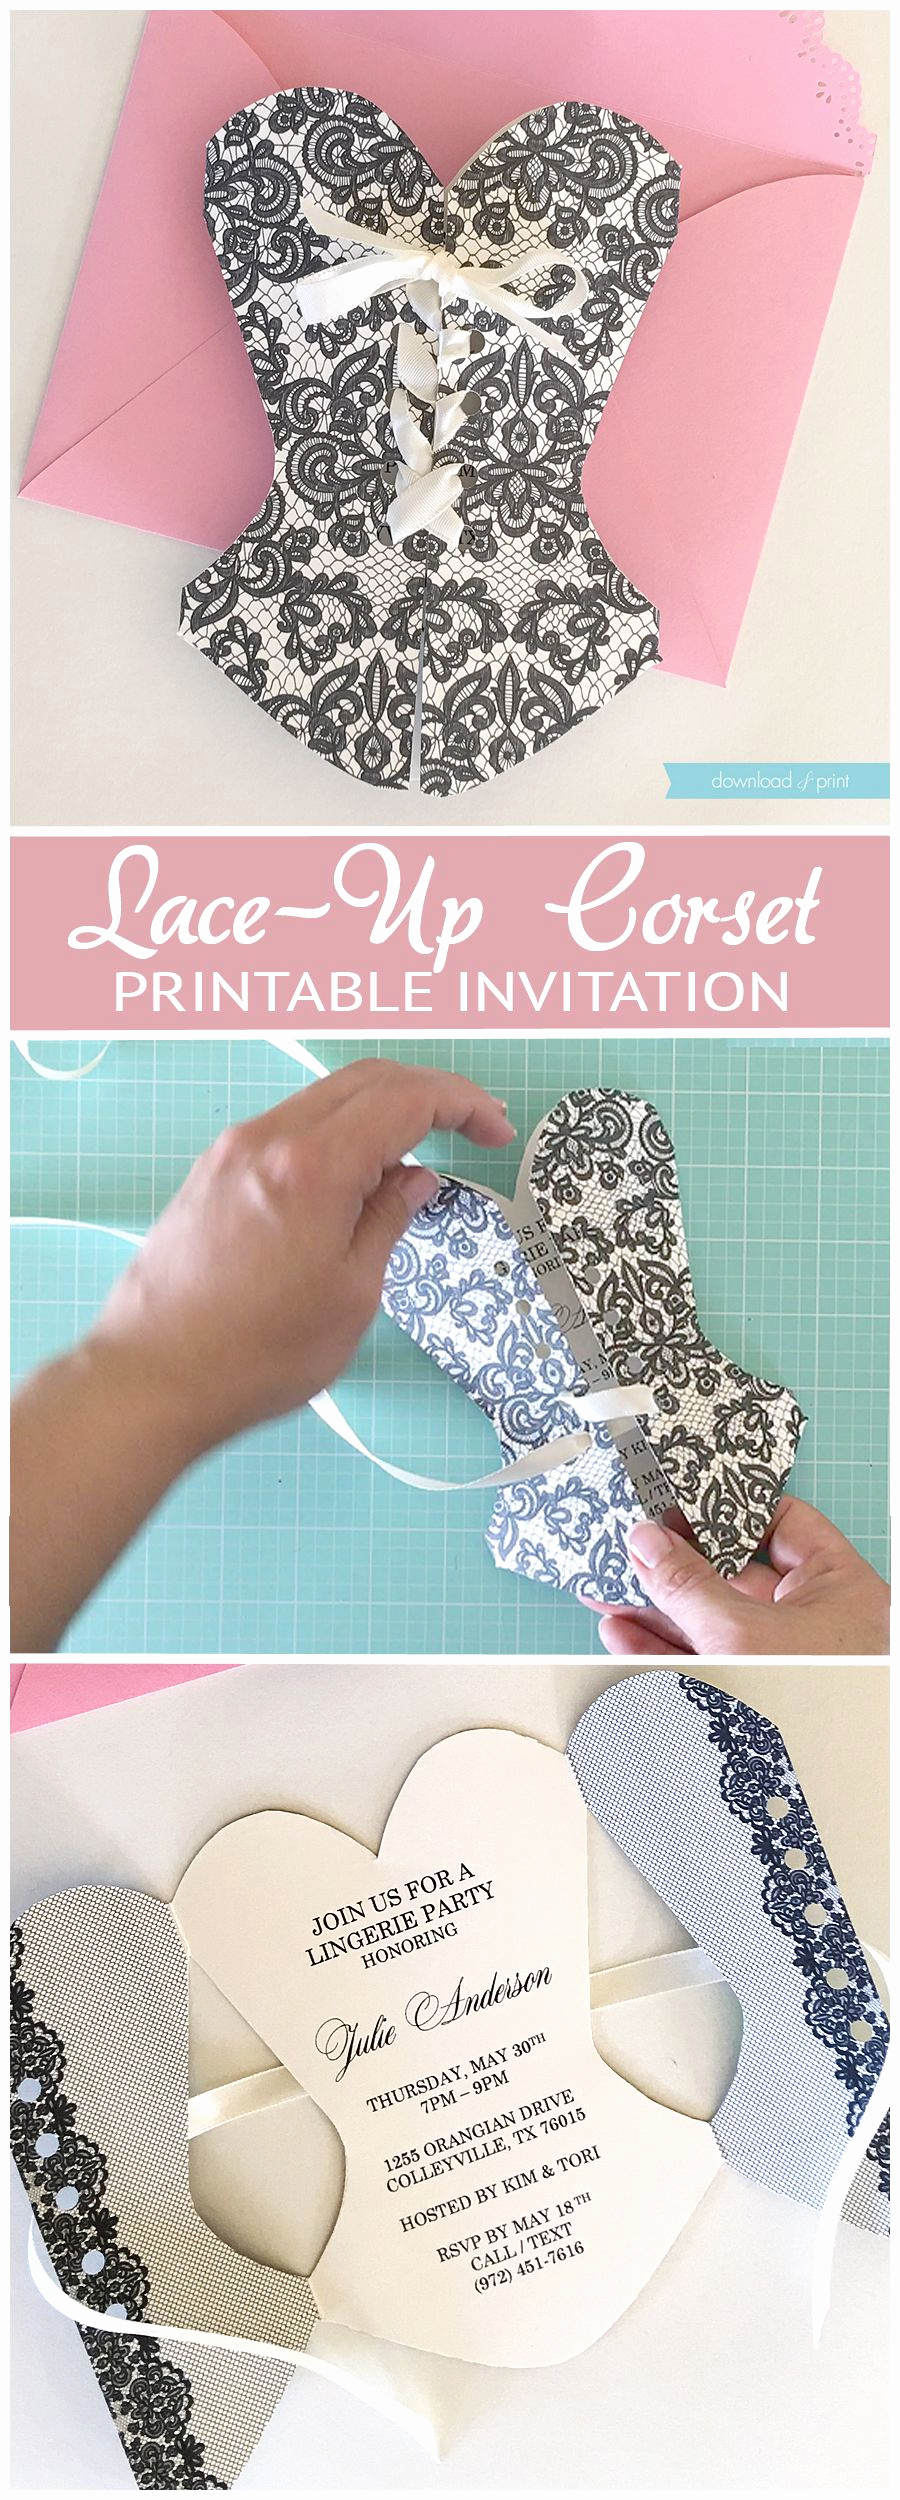 Corset Invitation Template Free Awesome Diy Lace Up Corset Invitation that S so Easy to Make if